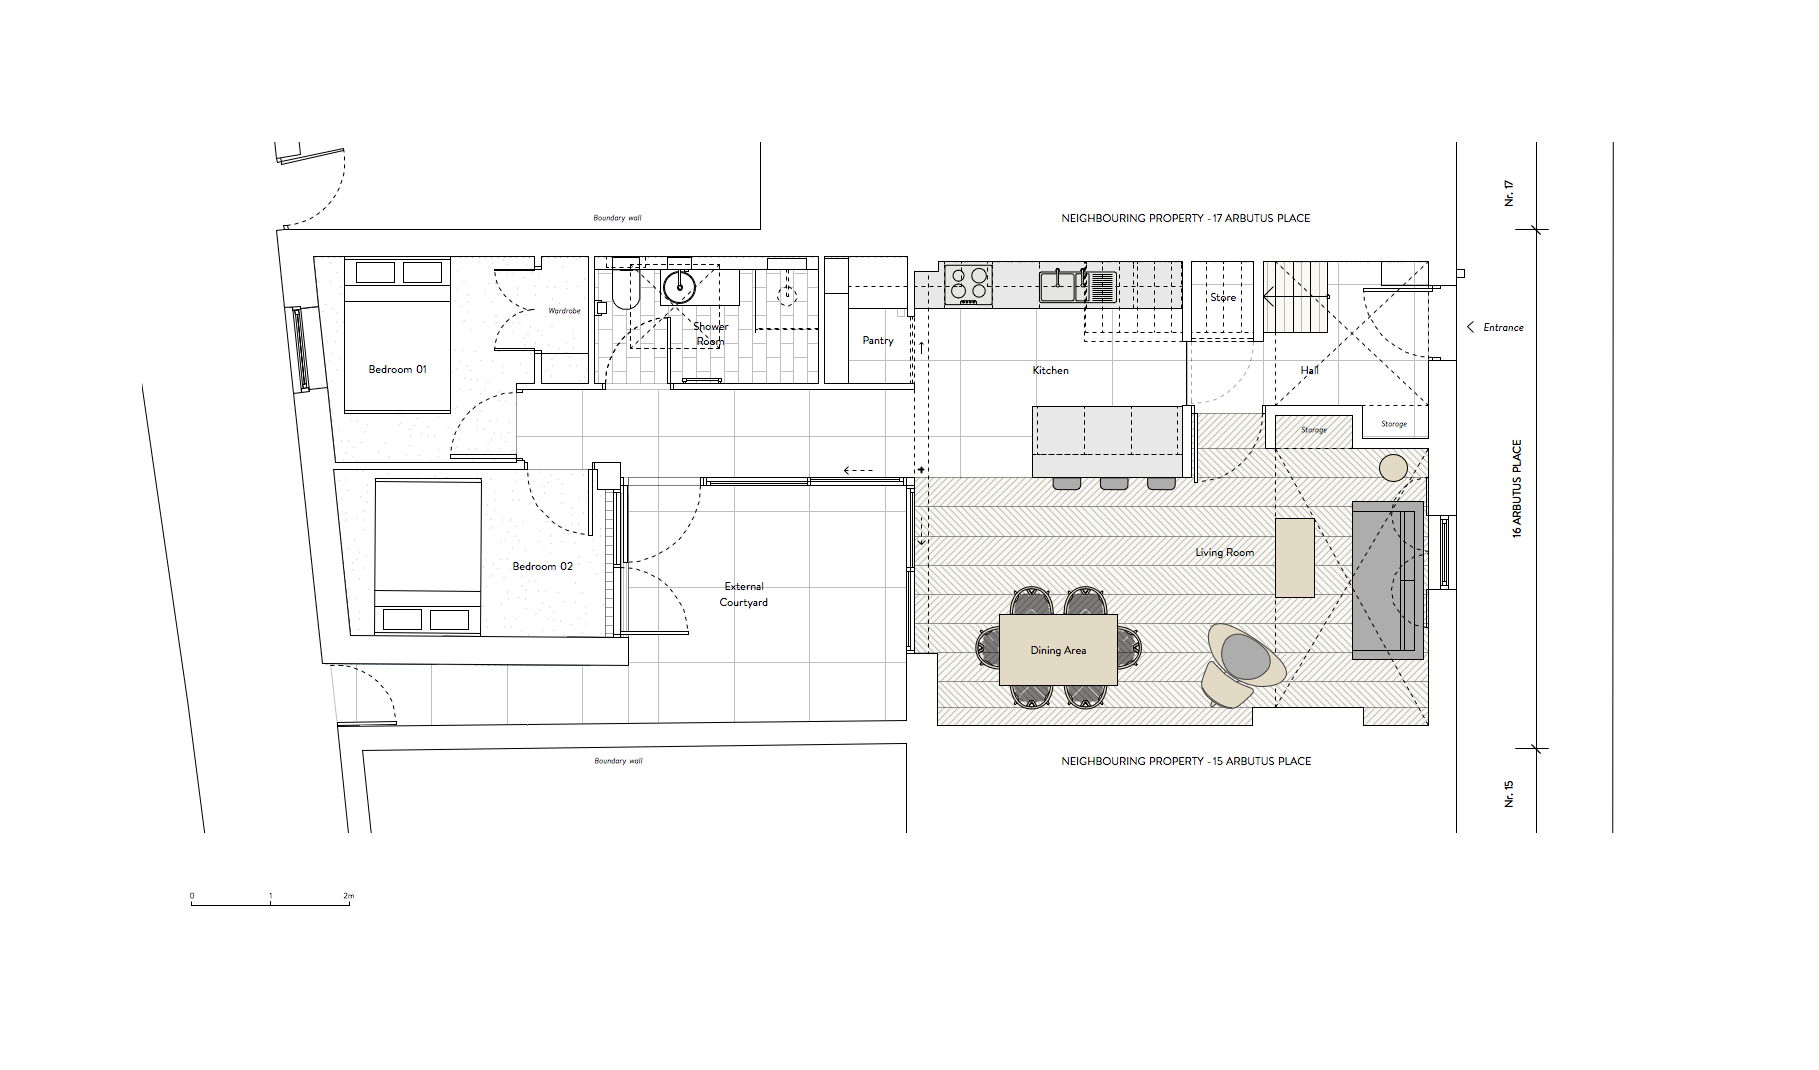 After:  New ground floor layout.